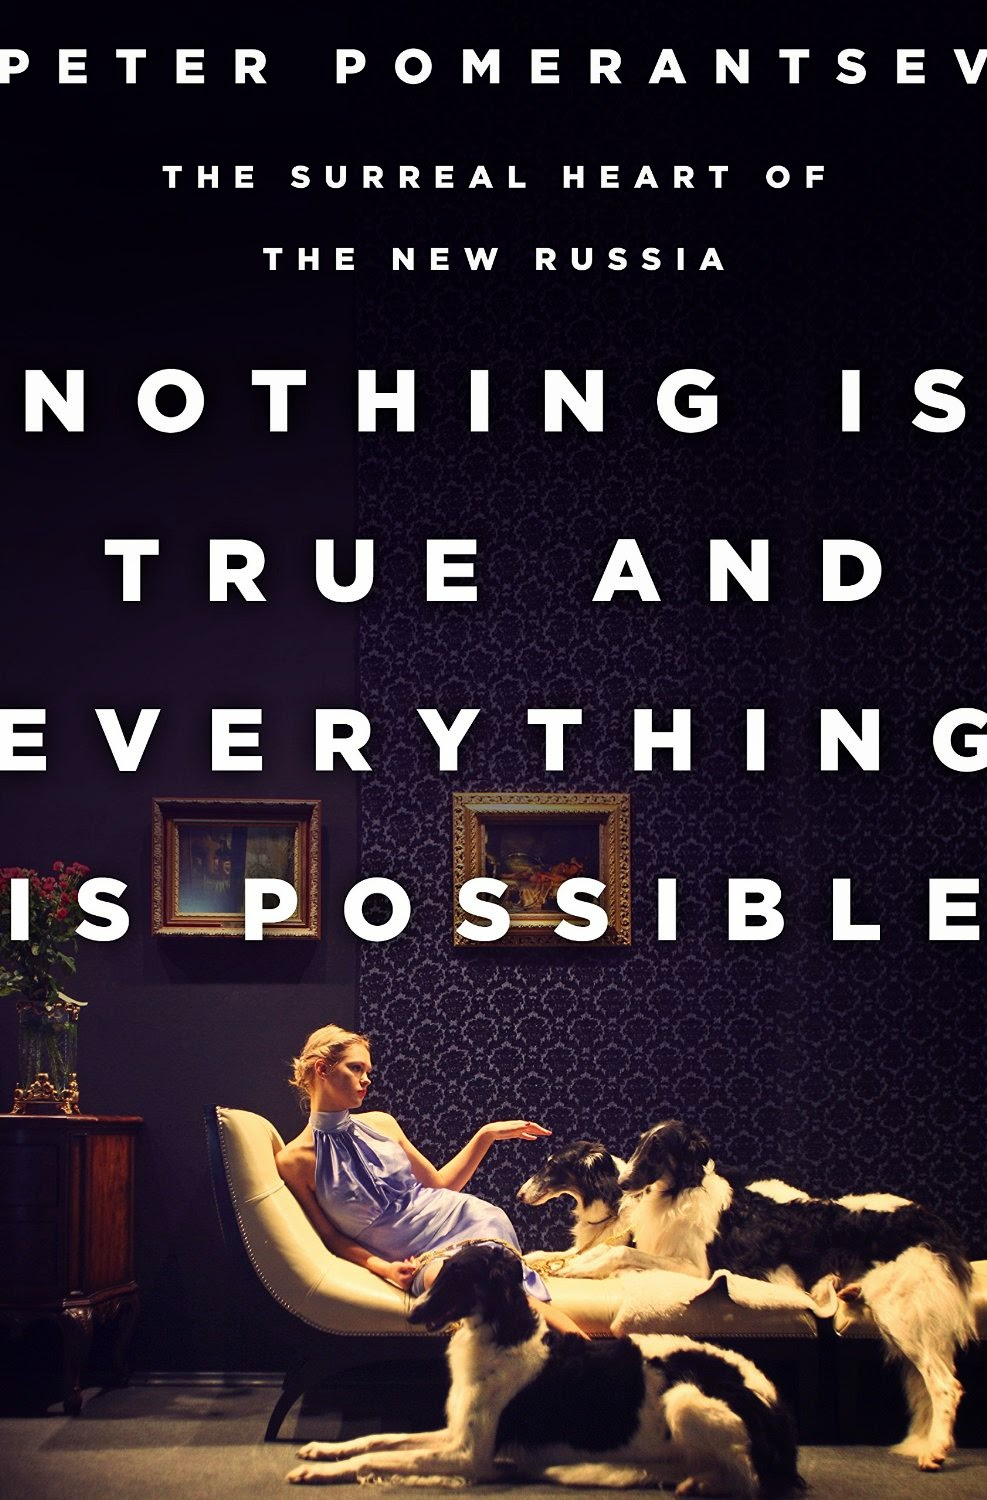 Peter Pomerantsev: Nothing Is True and Everything Is Possible. The Surreal Heart of the New Russia. PublicAffairs, New York 2014, 244 s.